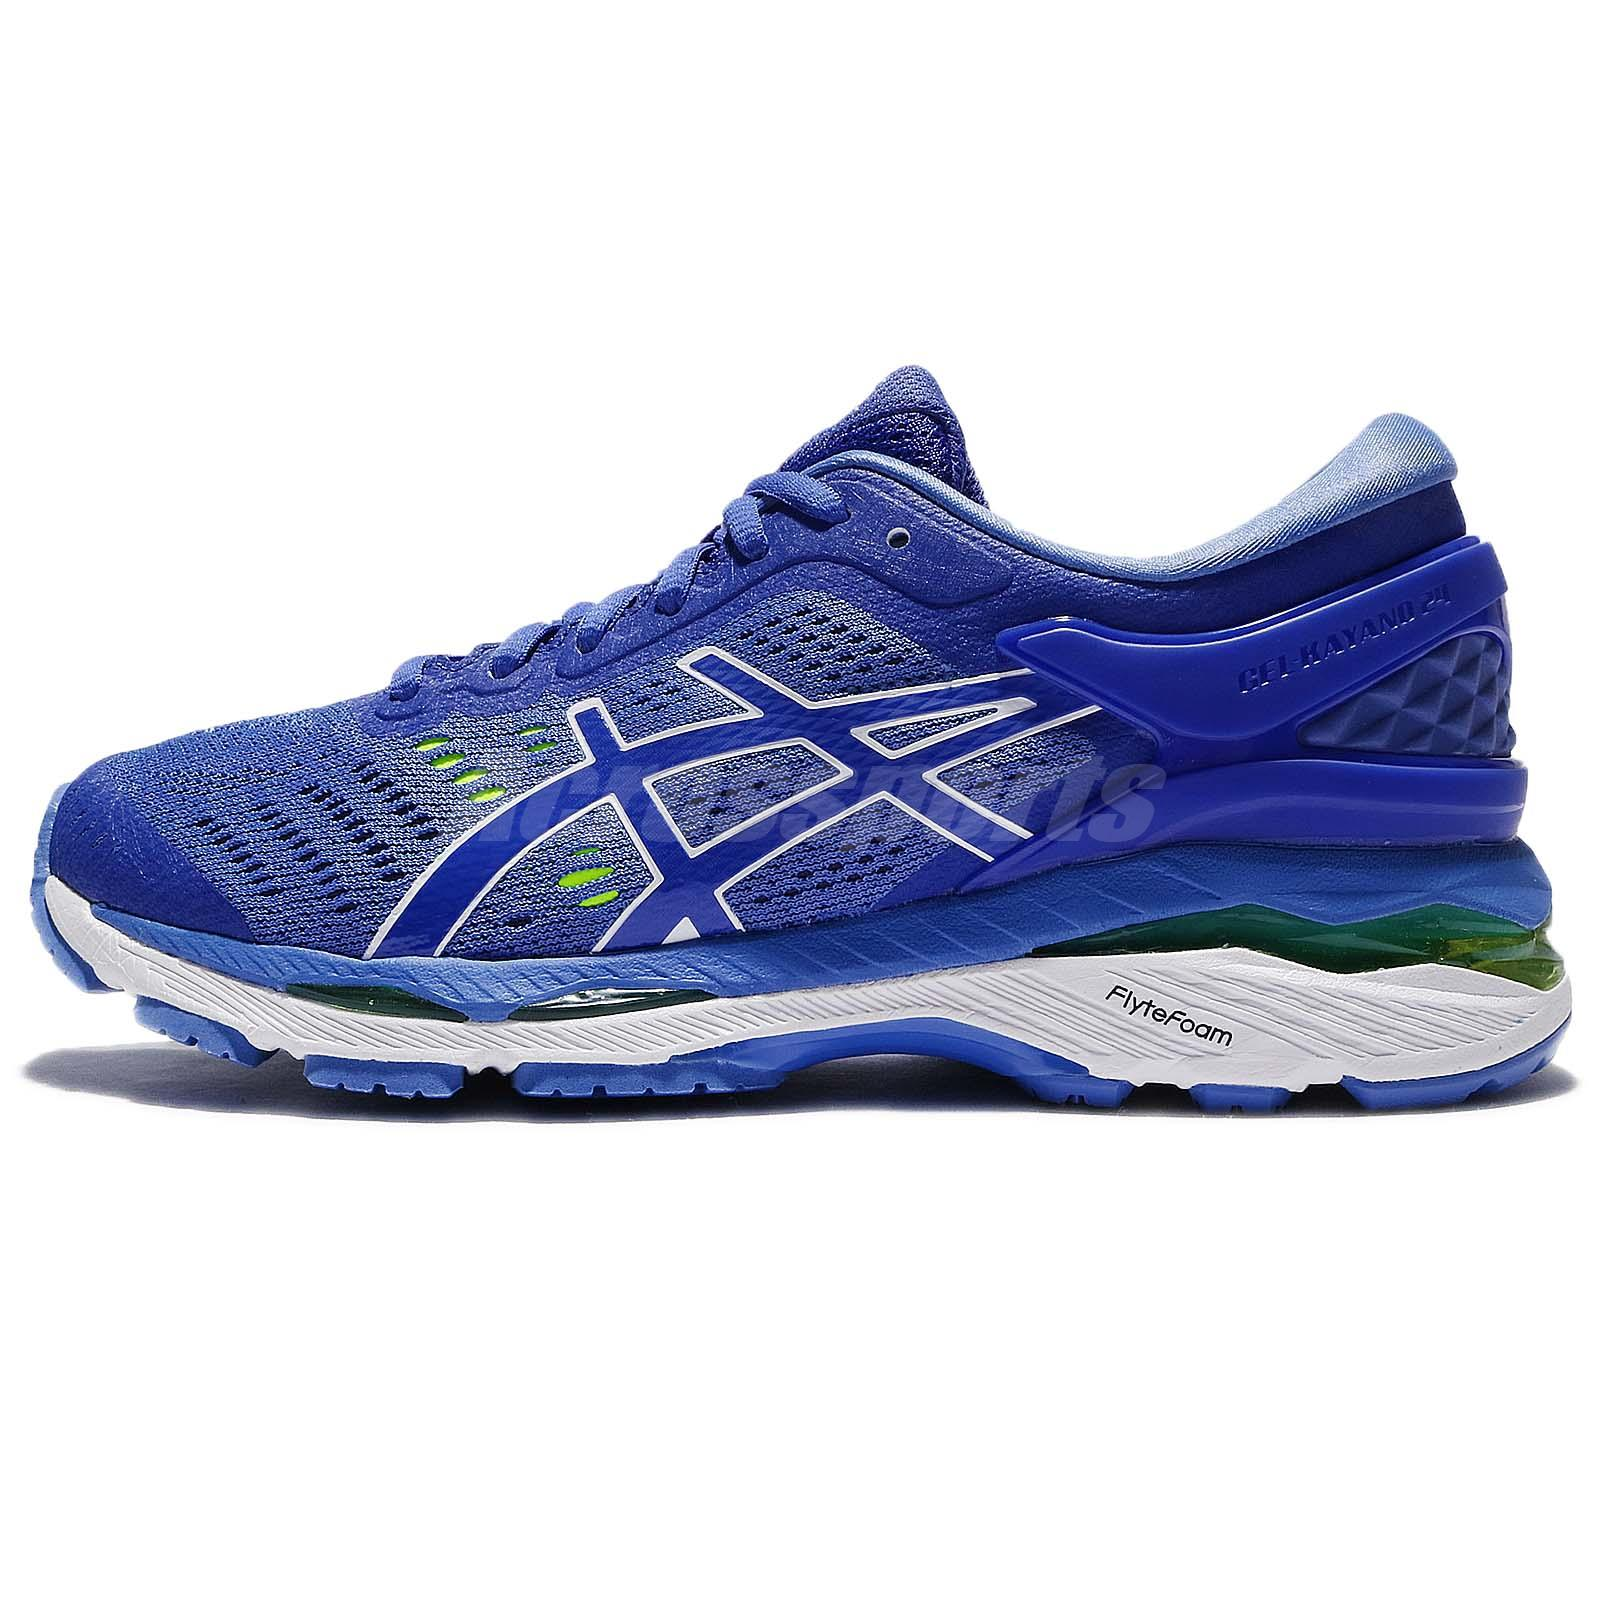 32f05e0442574 Asics Gel-Kayano 24 D Wide Blue White Women Running Shoes Sneakers  T7A5N-4840